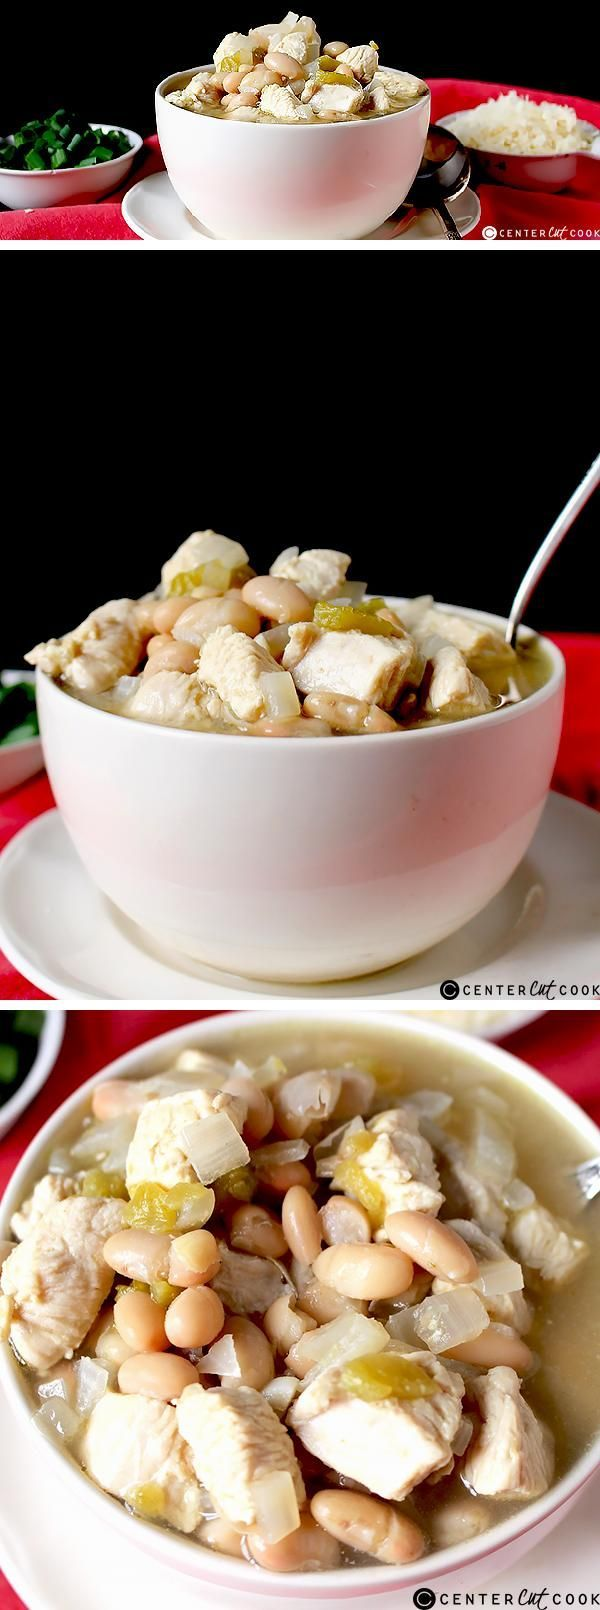 This WHITE CHICKEN CHILI is easy, quick, and so delicious! A great weeknight meal that is comforting and healthy.